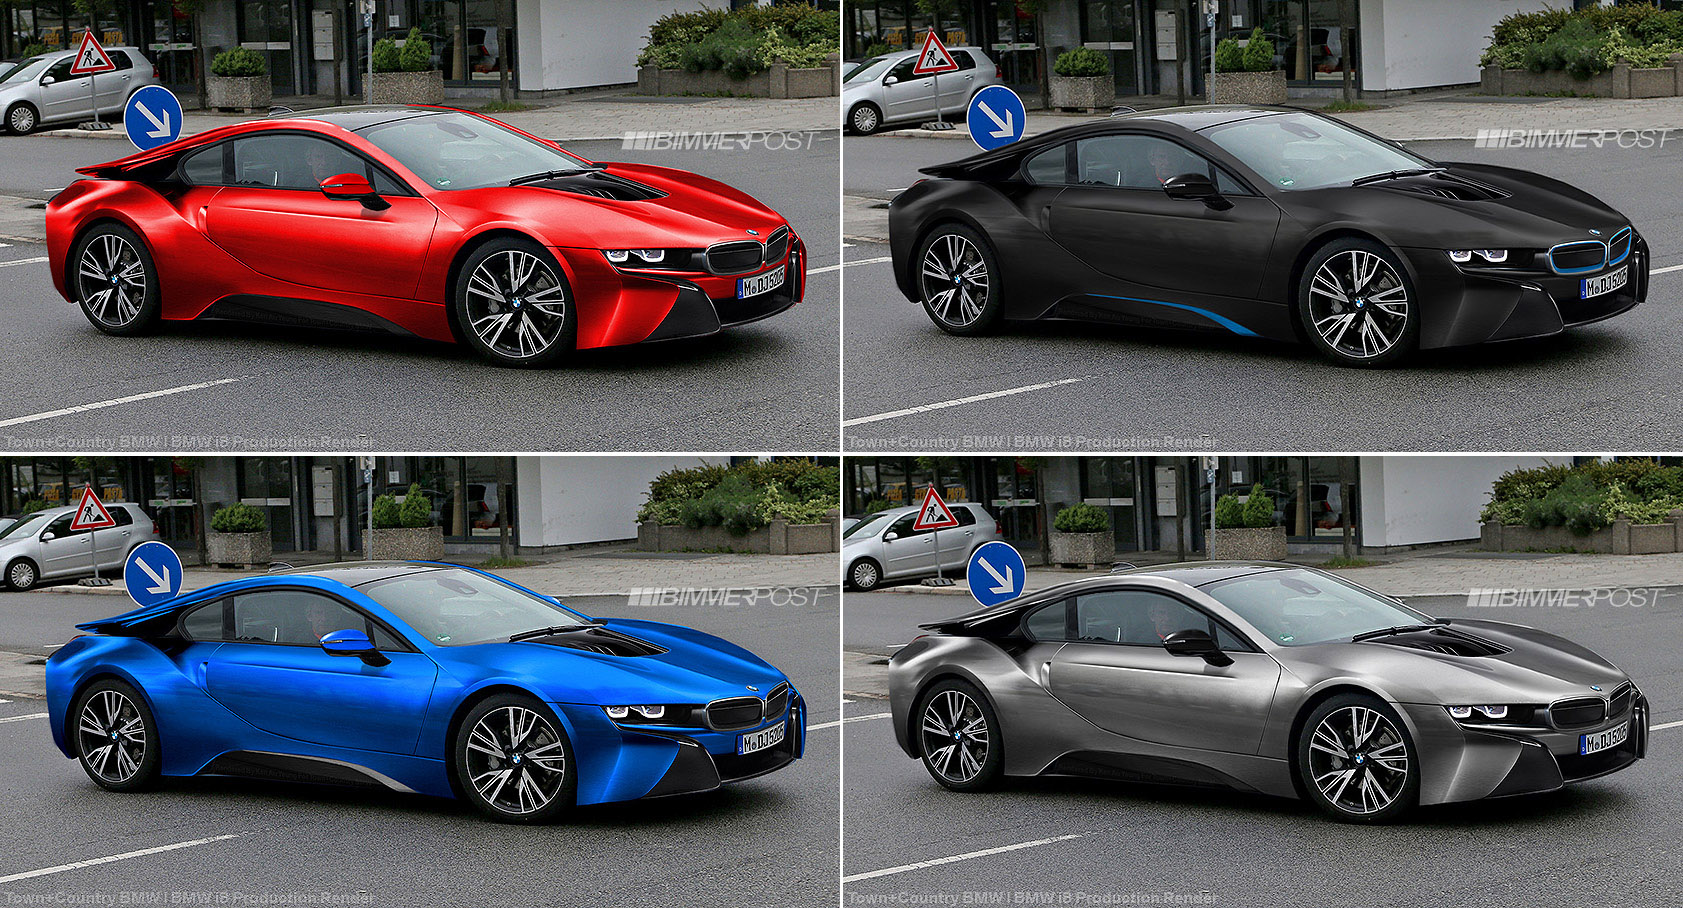 Bmw I8 Production Renders Based On Latest Spyshots